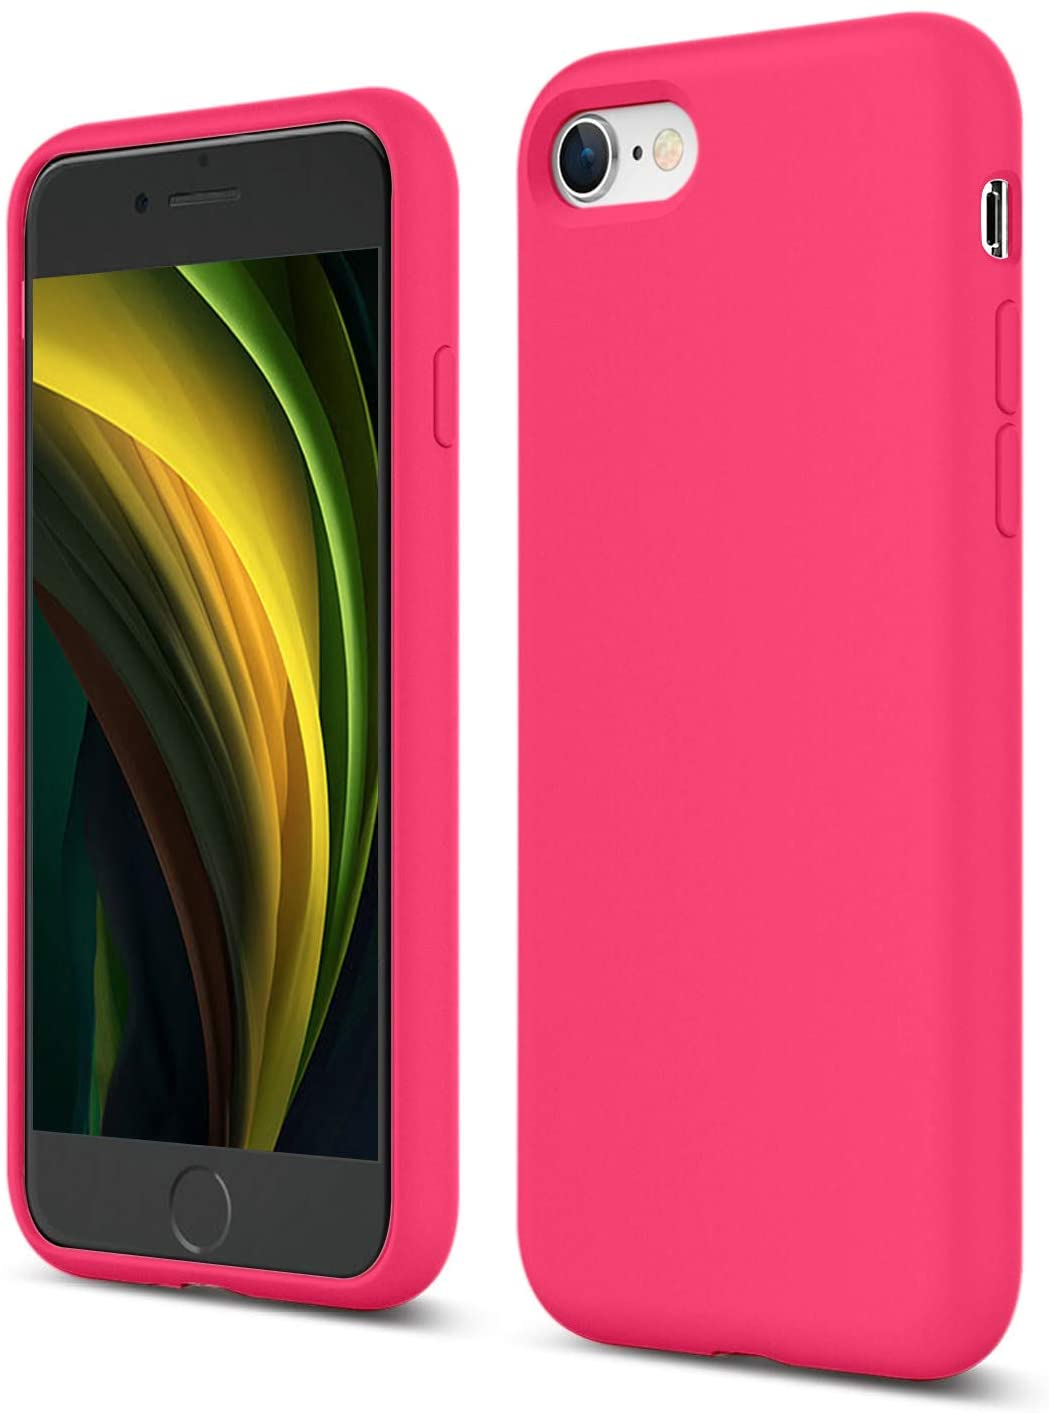 ZUSLAB Cover for Apple iPhone 7/8/SE 2020 Case Silicone Gel Rubber Bumper,Slim Thin Hard Shell Shockproof Full-Body Protective Case - Hot Pink